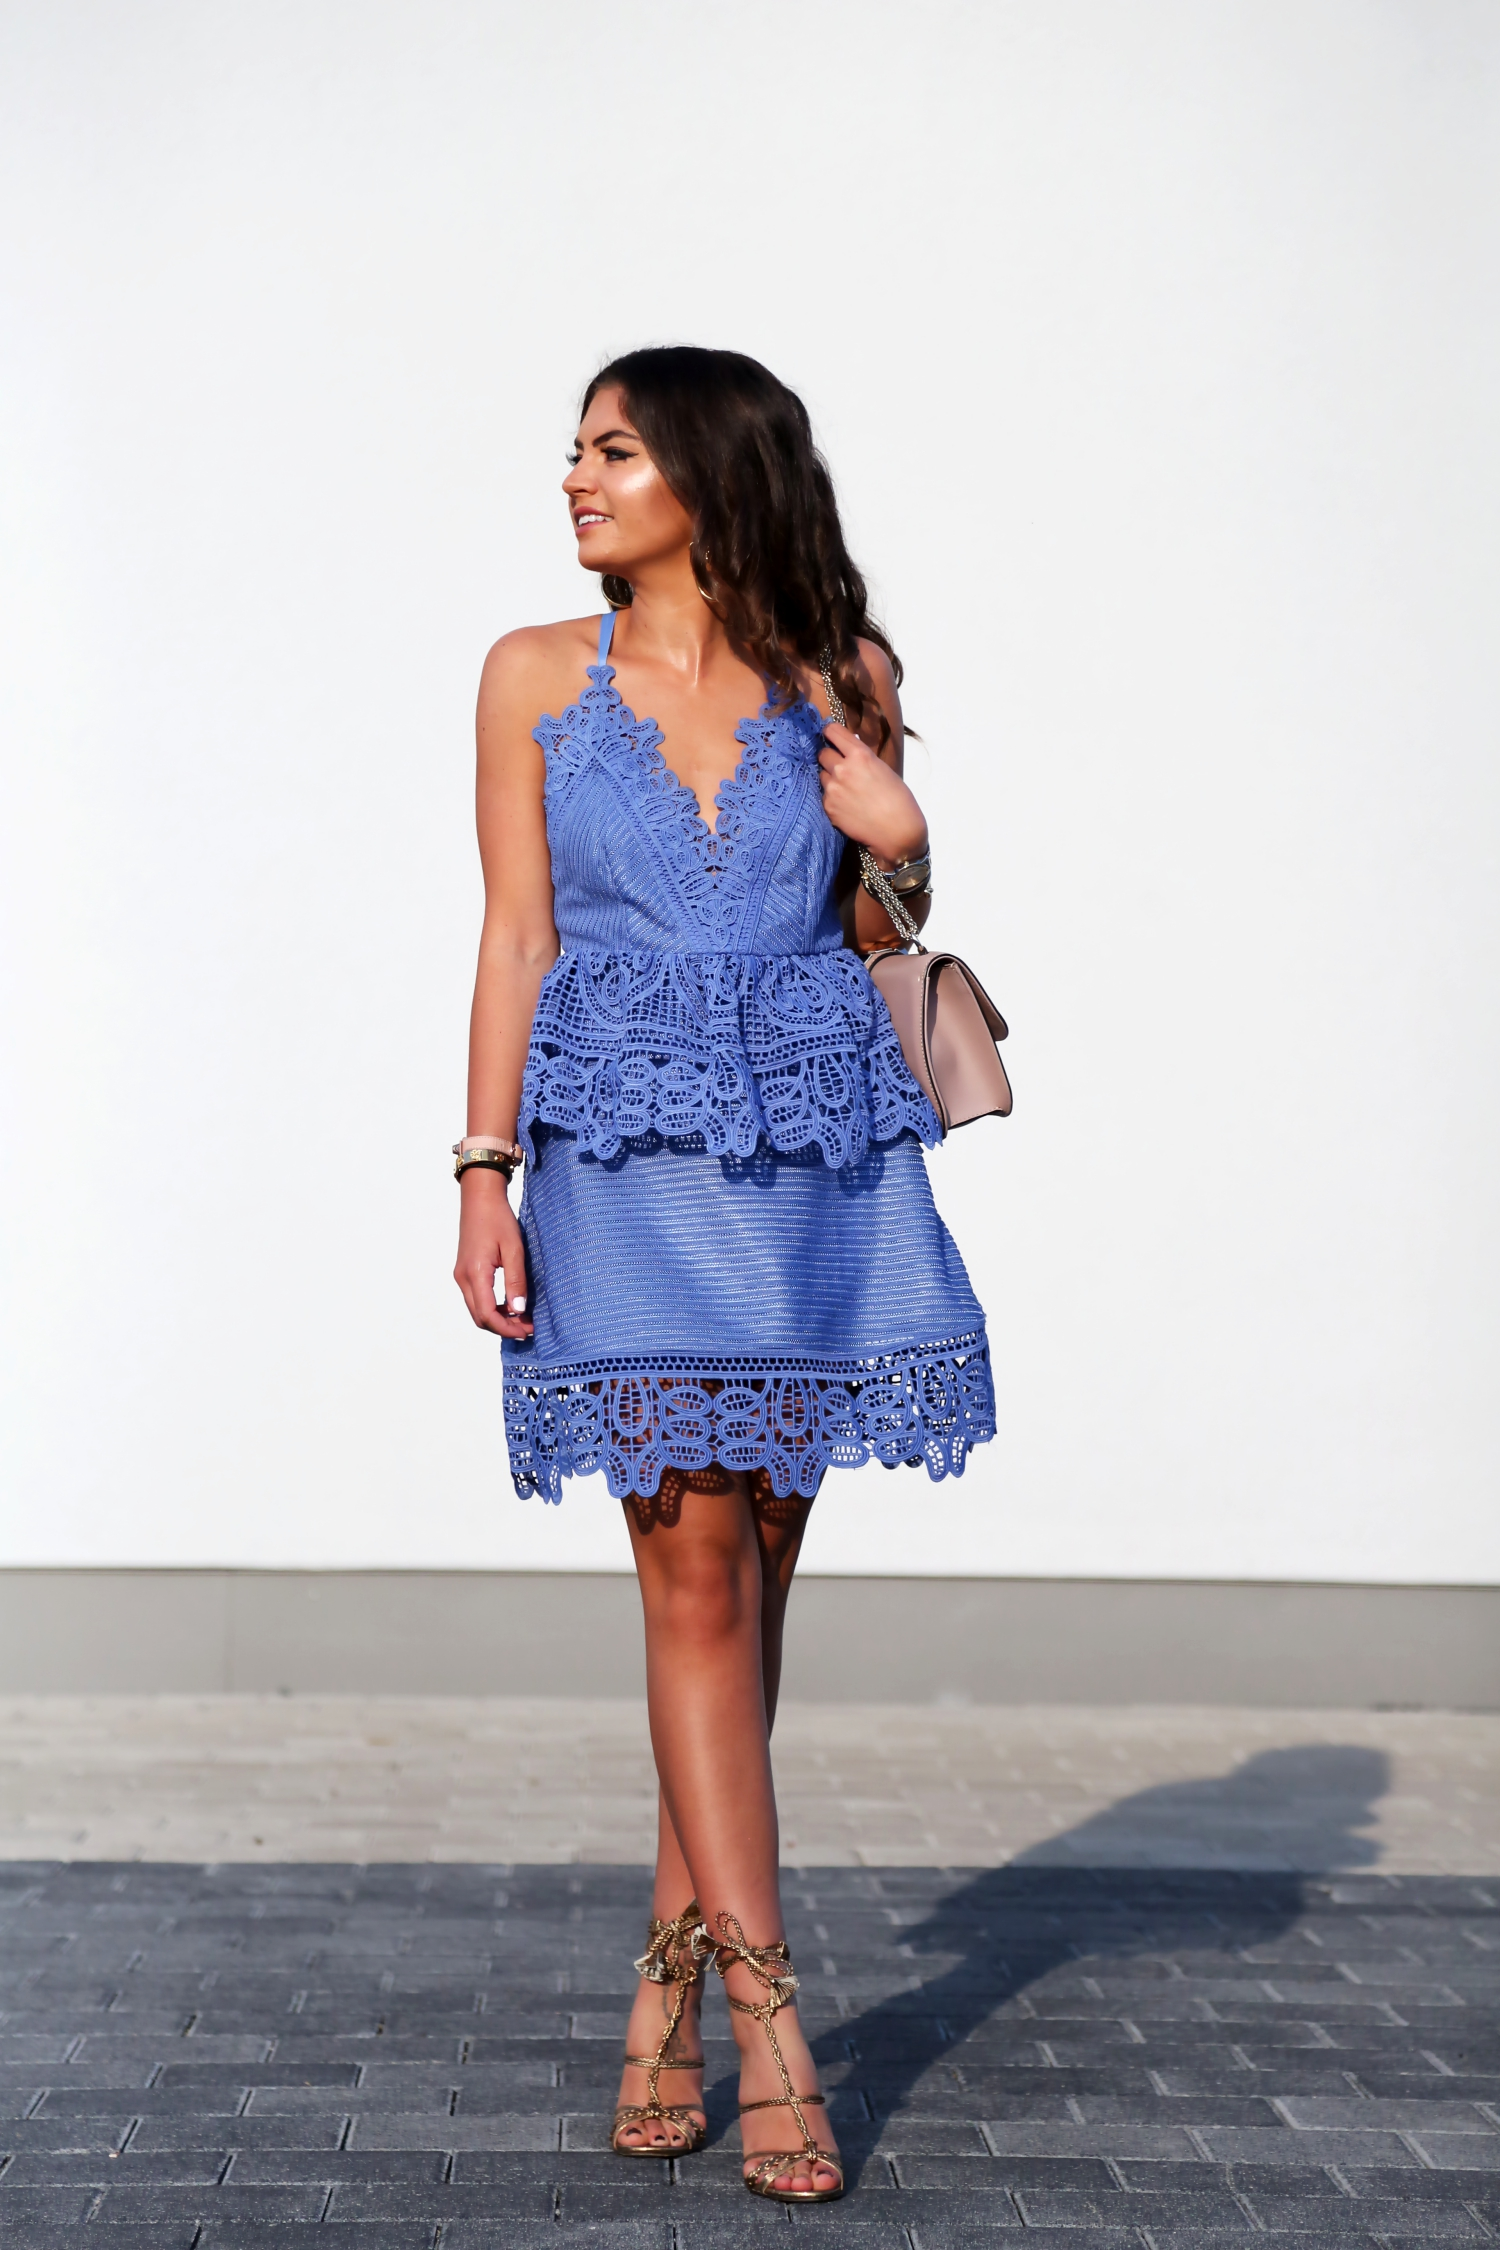 outfit-selfportrait-lace-dress-trim-peplum-valentino-garavani-rockstud-glam-lock-bag-nude